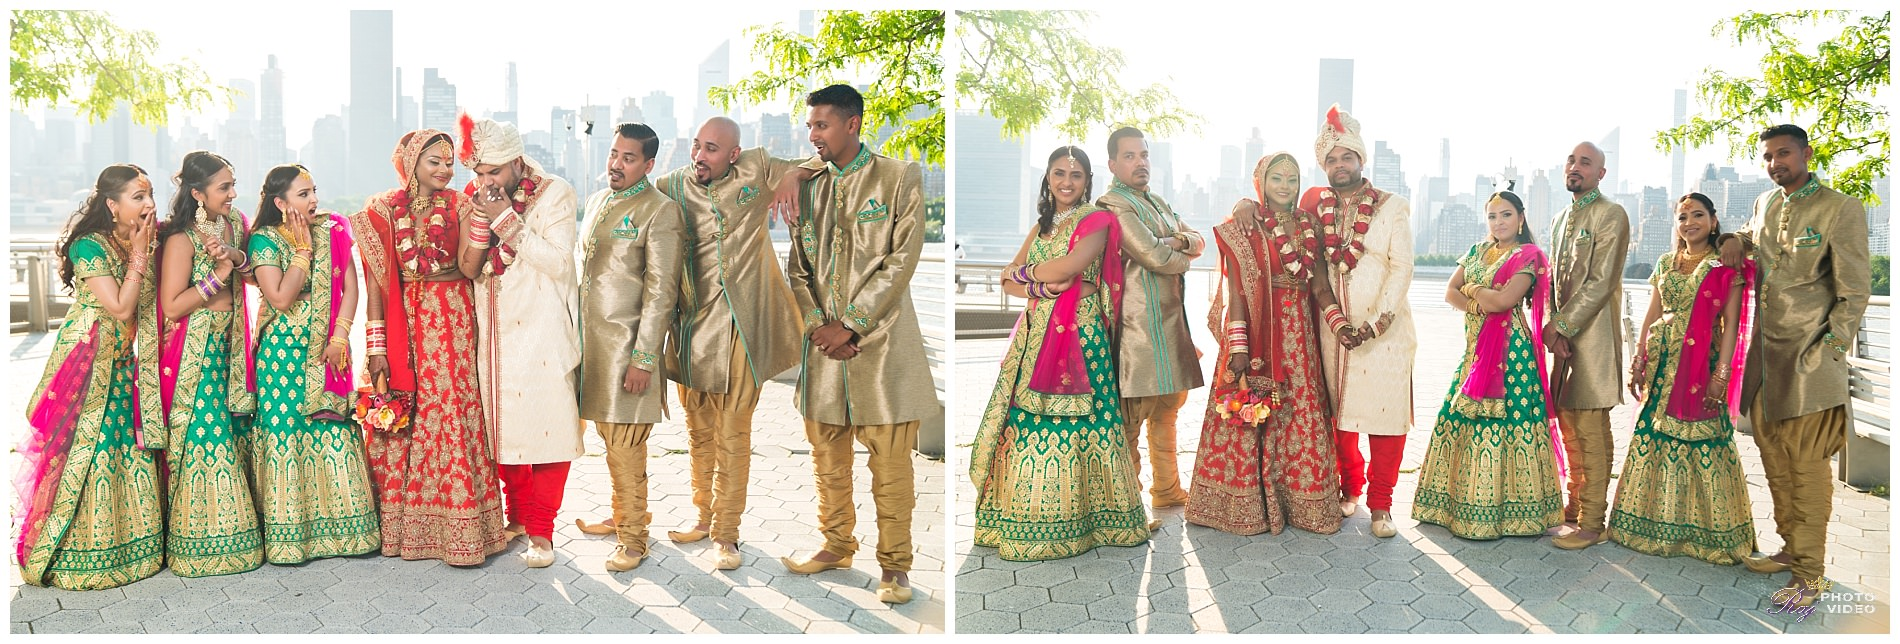 Gantry-State-Plaza-Park-Bridal-Party-Shoot-Diana-Shaun-6.jpg